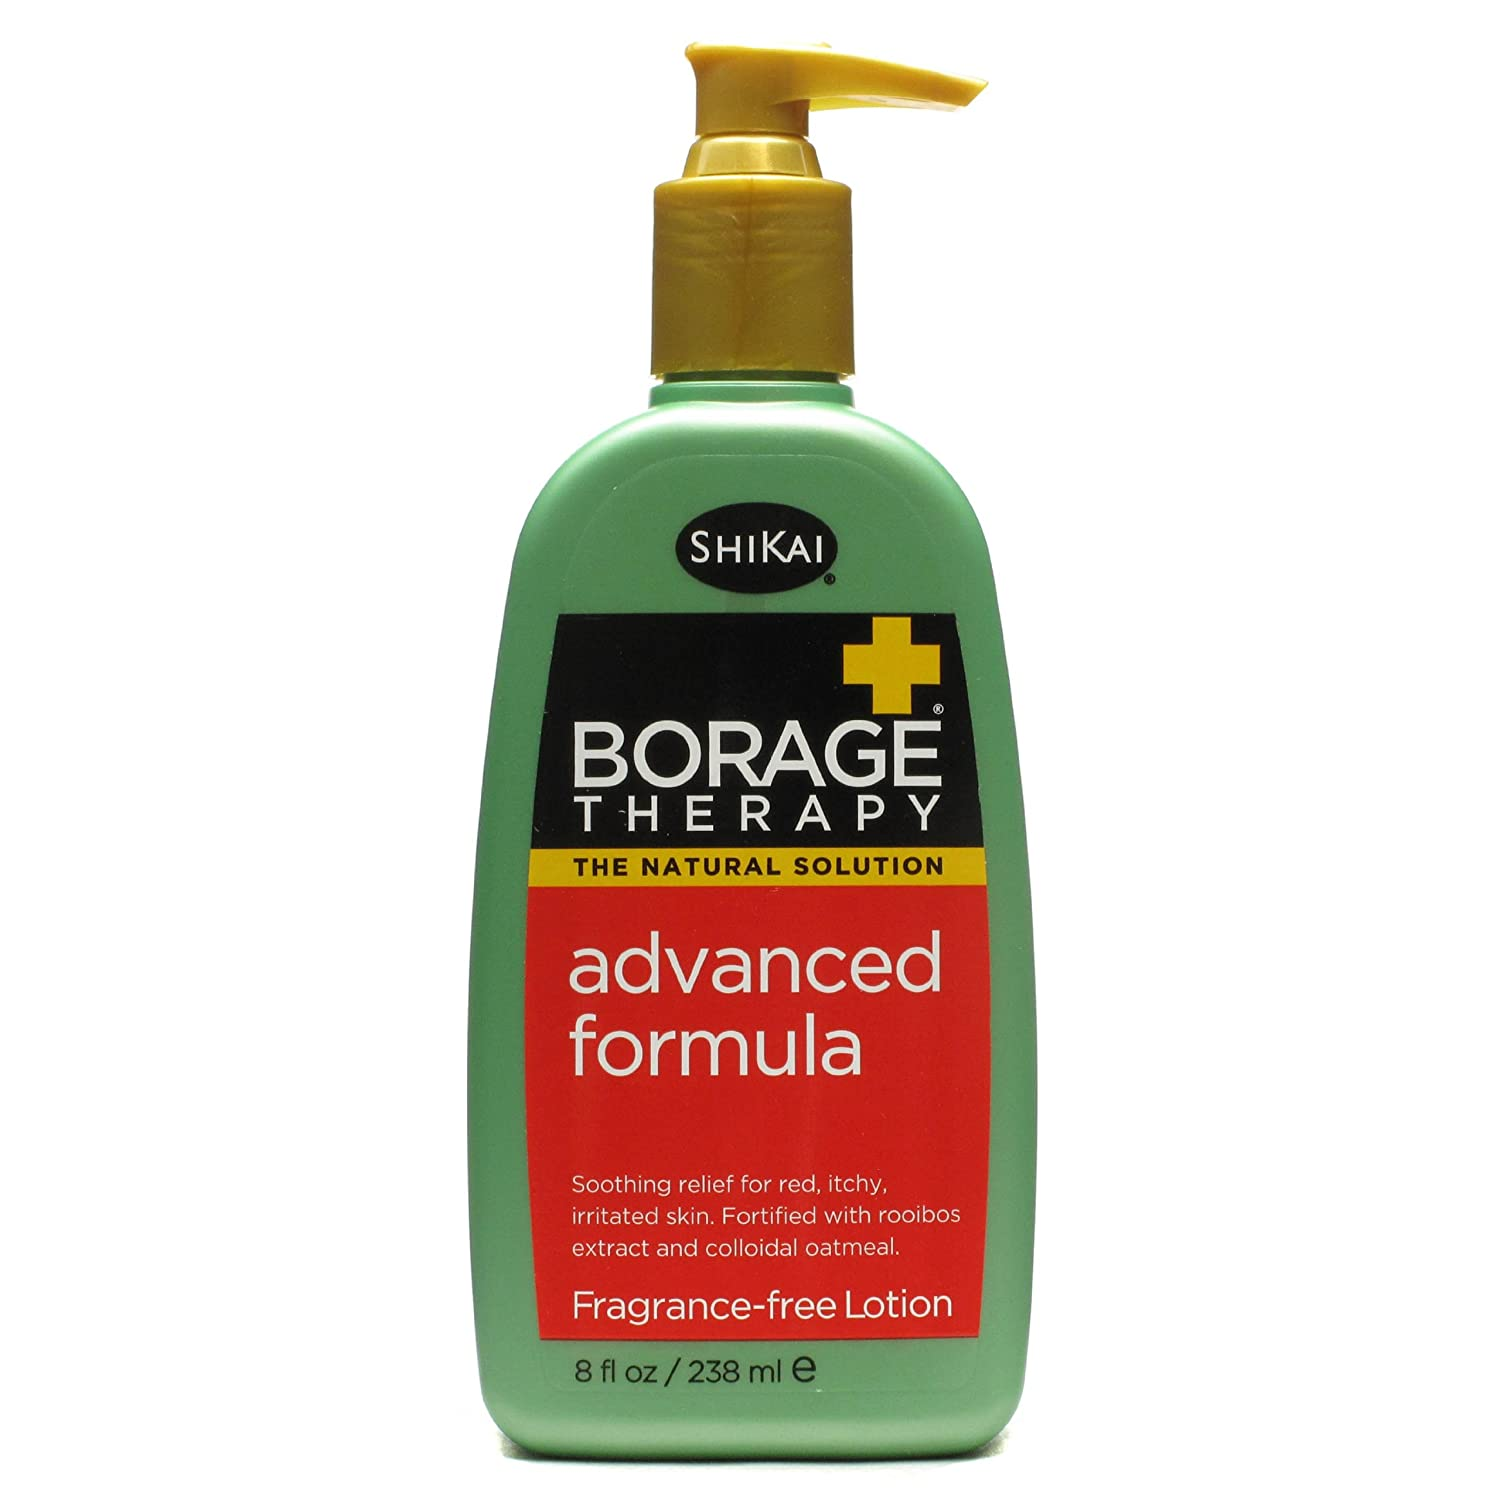 ShiKai - Borage Therapy Advanced Formula Lotion Dry Skin Lotion, Soothing & Moisturizing Relief For Dry, Irritated & Itchy Skin, Non-Greasy, Sensitive Skin Friendly (Fragrance-Free, 8 Ounces)